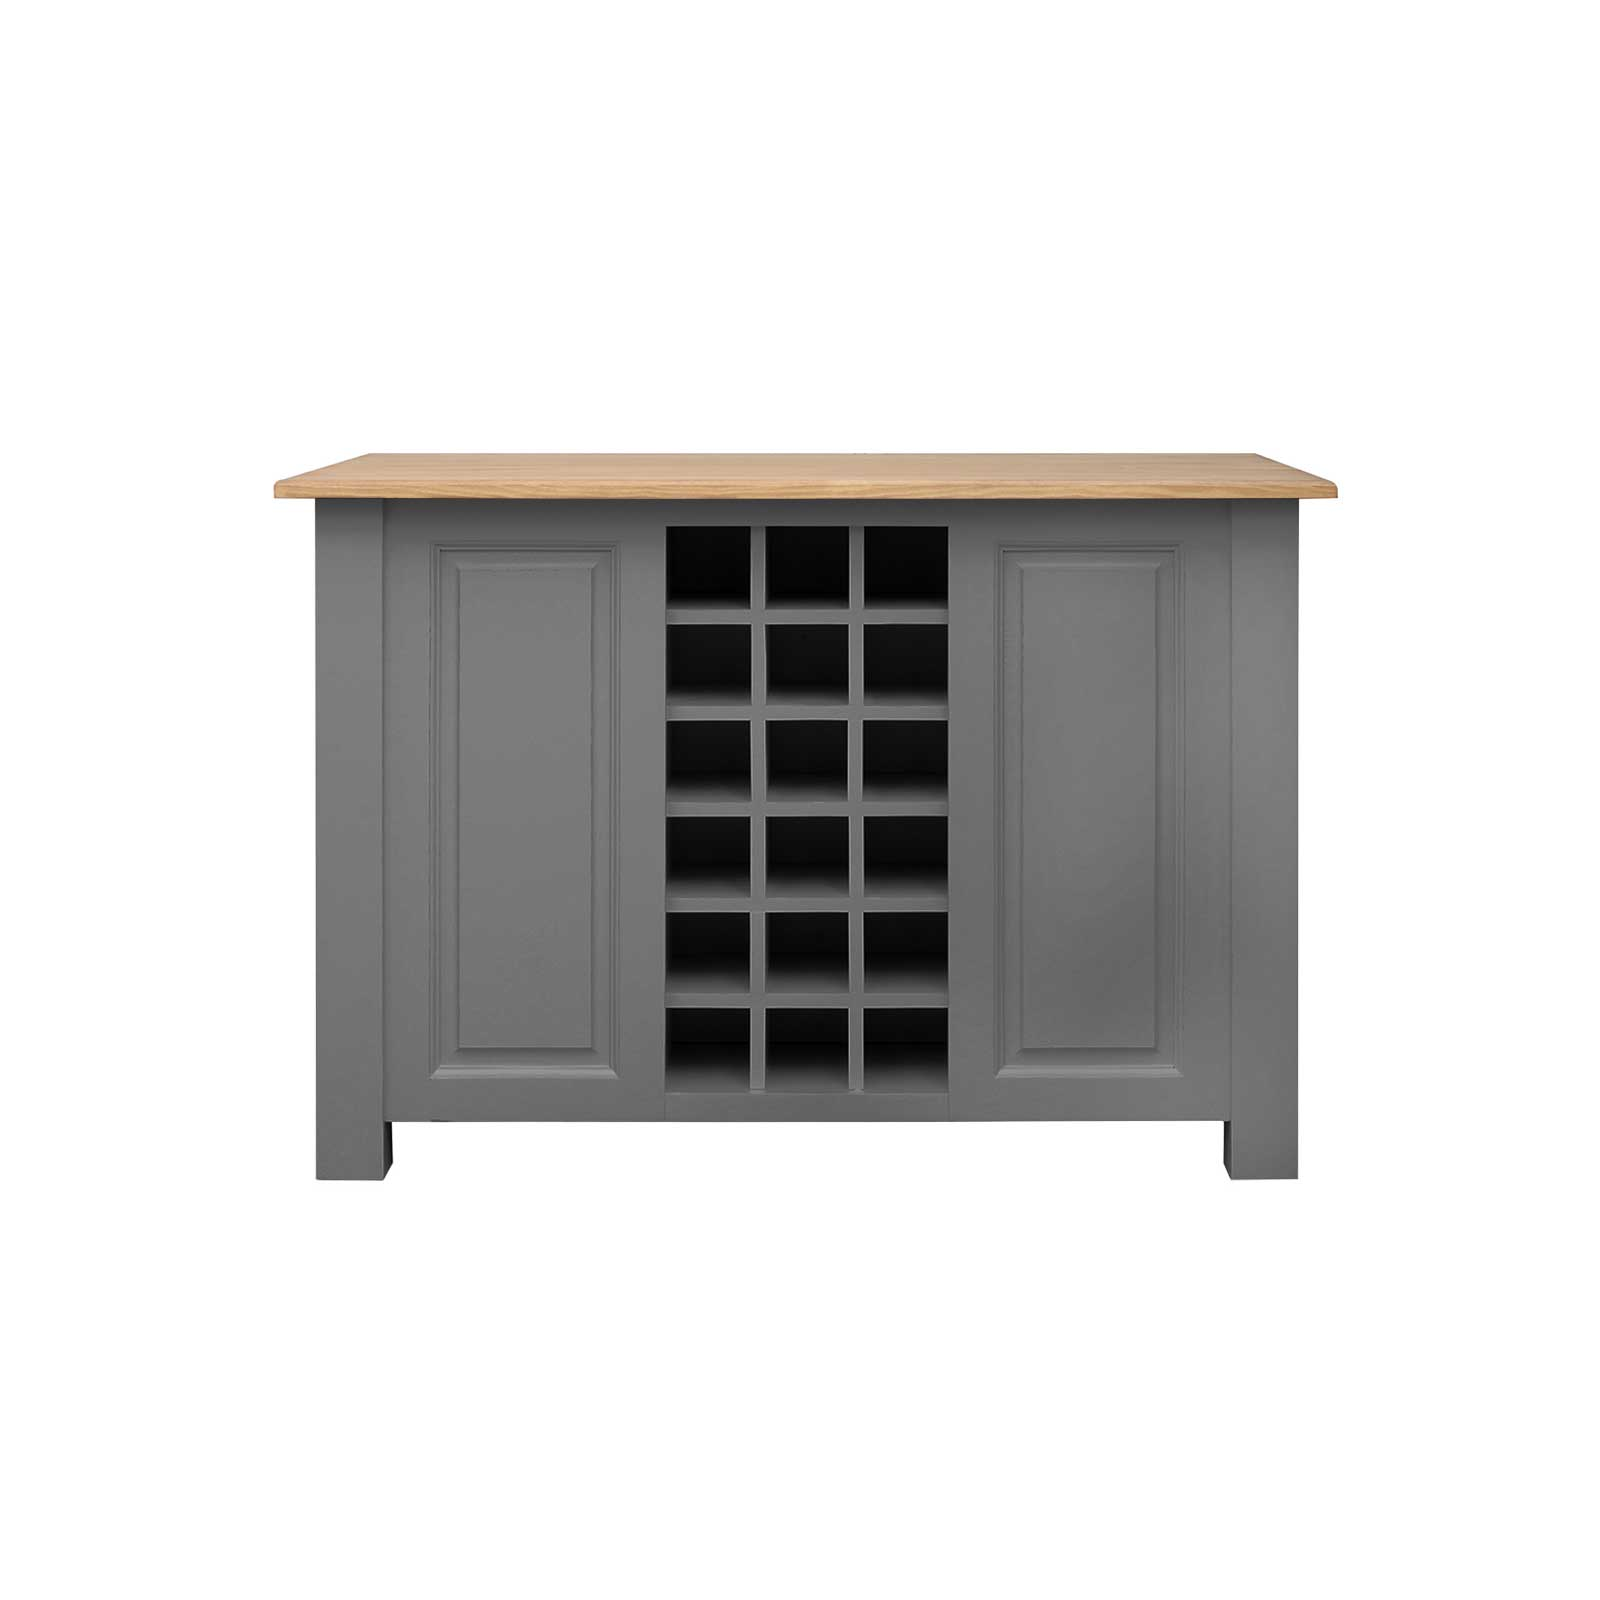 Soho Dark Grey Painted Kitchen Island with Wine Rack_1